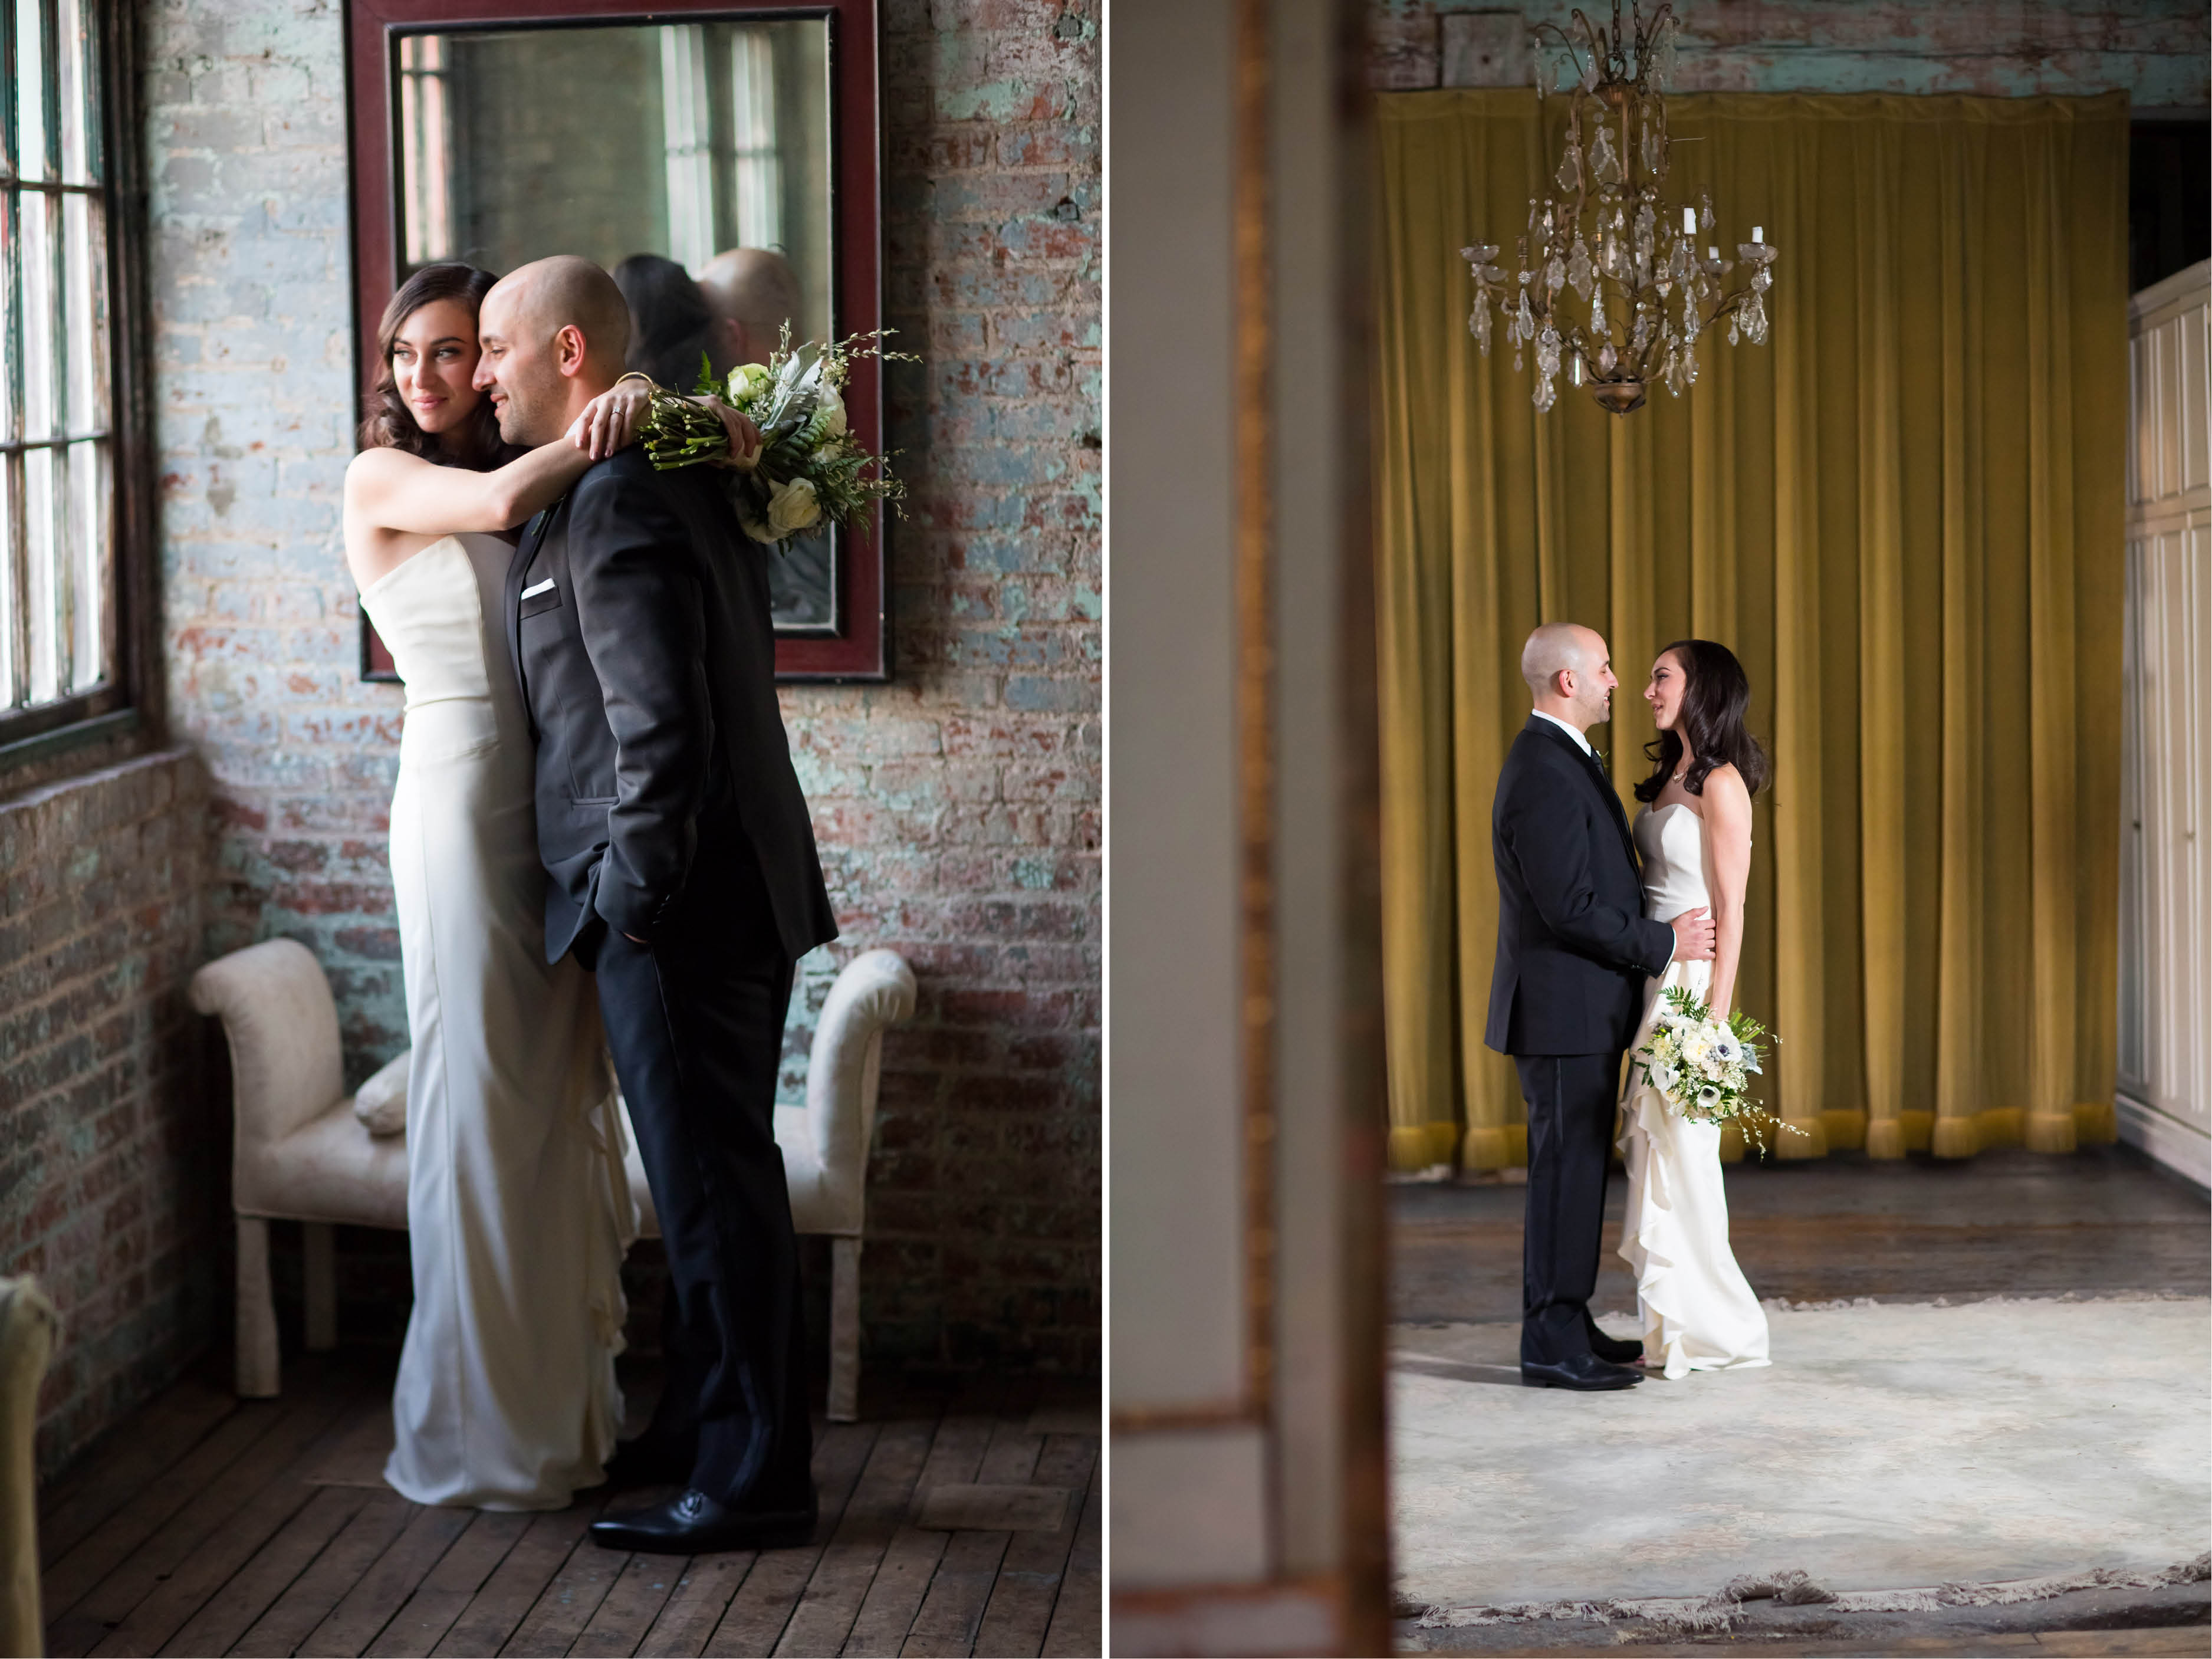 Emma_cleary_photography Metropolitan building wedding16